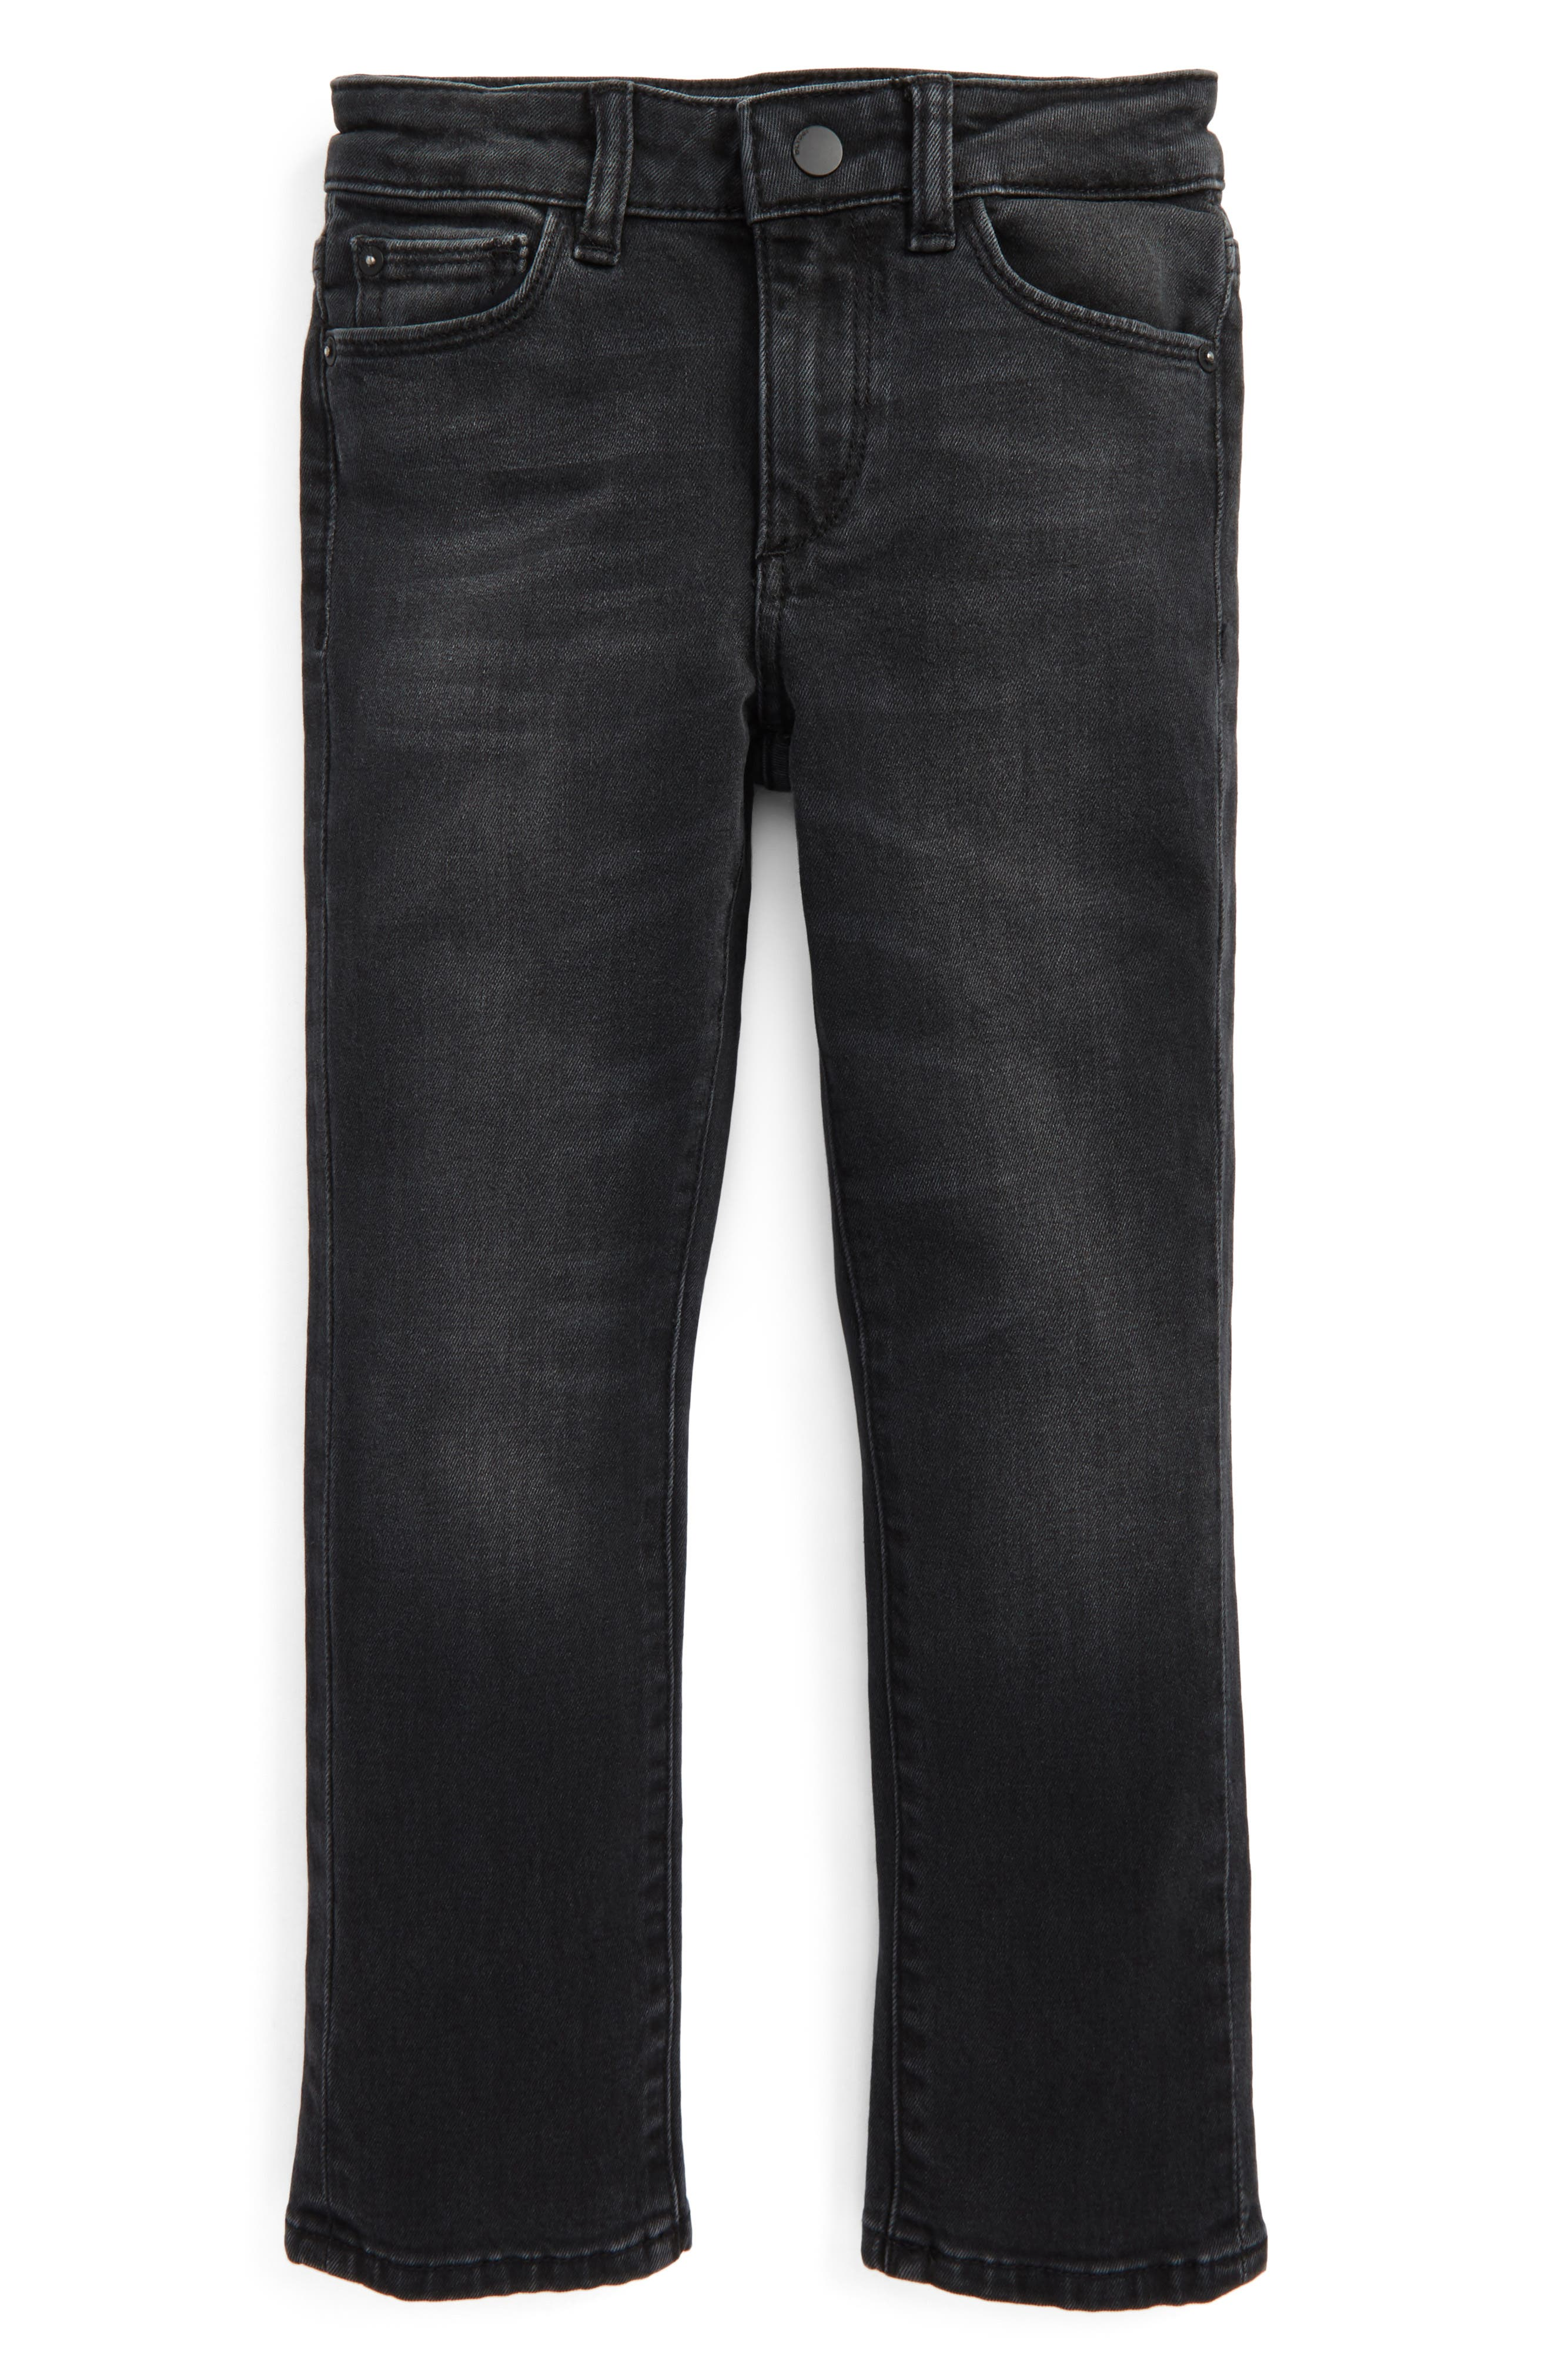 DL 1961 Hawke Skinny Jeans (Toddler Boys & Little Boys)